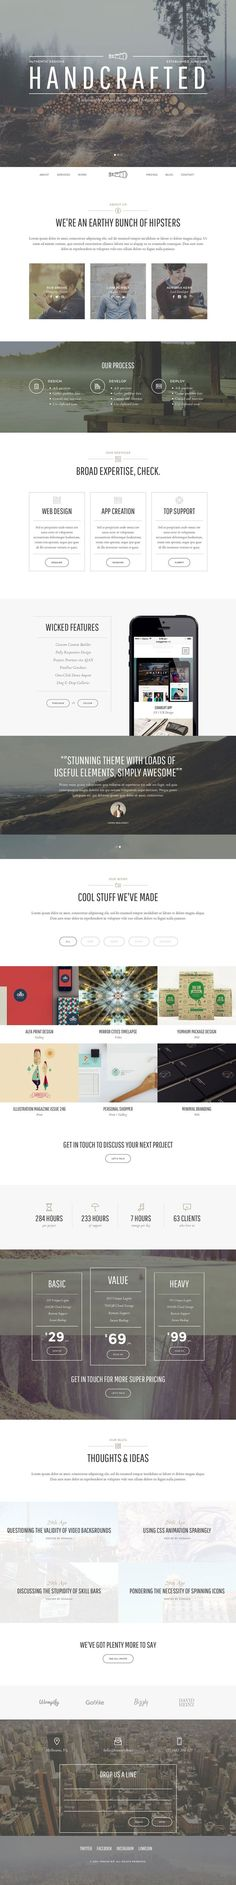 Loves Data Loves || Thread - Multi-Purpose Theme, modern vintage | Hand Made | Web design | Website | Black and White | Photography